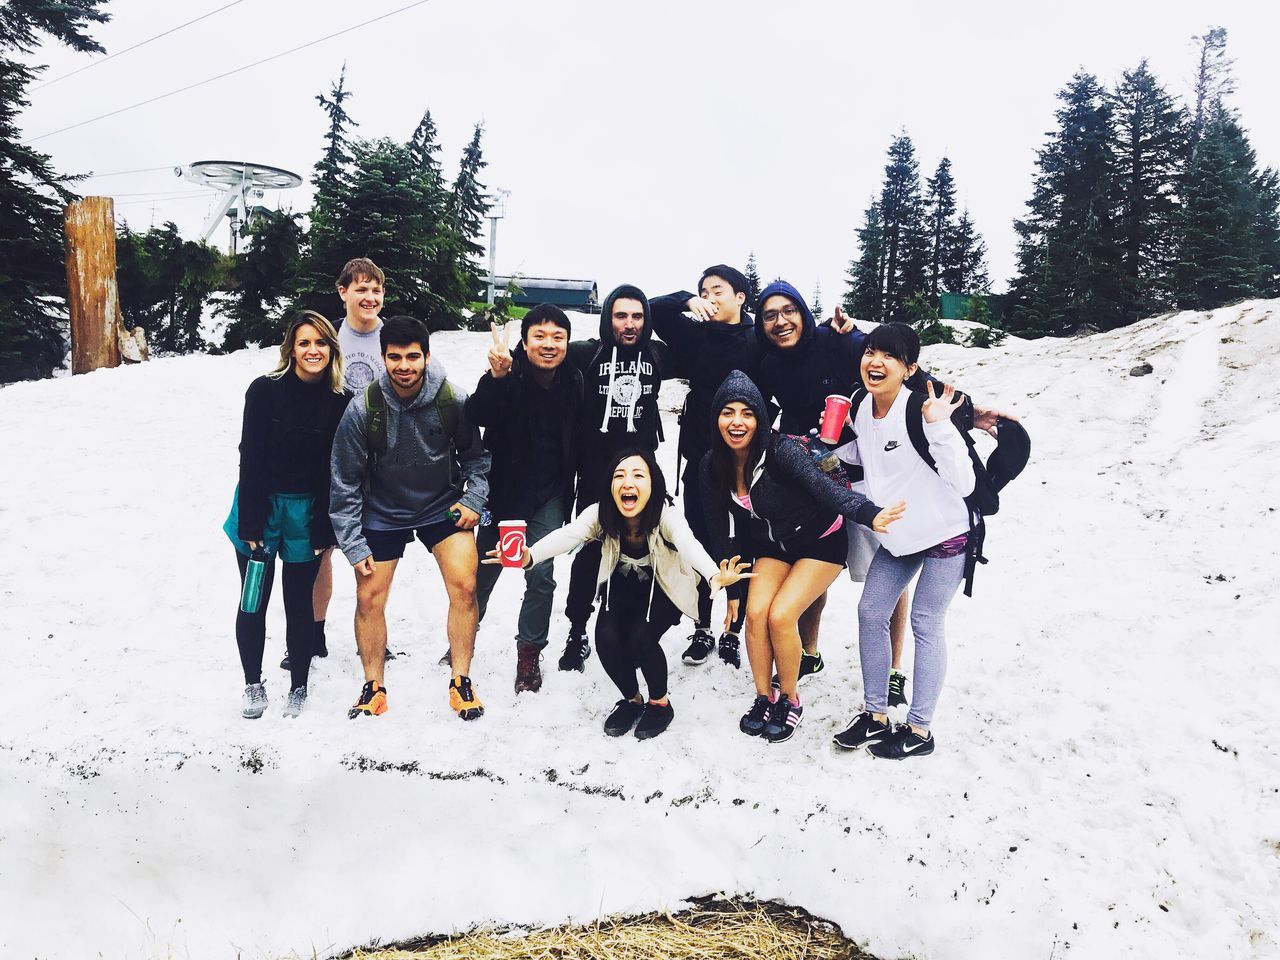 snow, winter, real people, cold temperature, outdoors, day, leisure activity, fun, large group of people, lifestyles, nature, tree, full length, friendship, sky, mammal